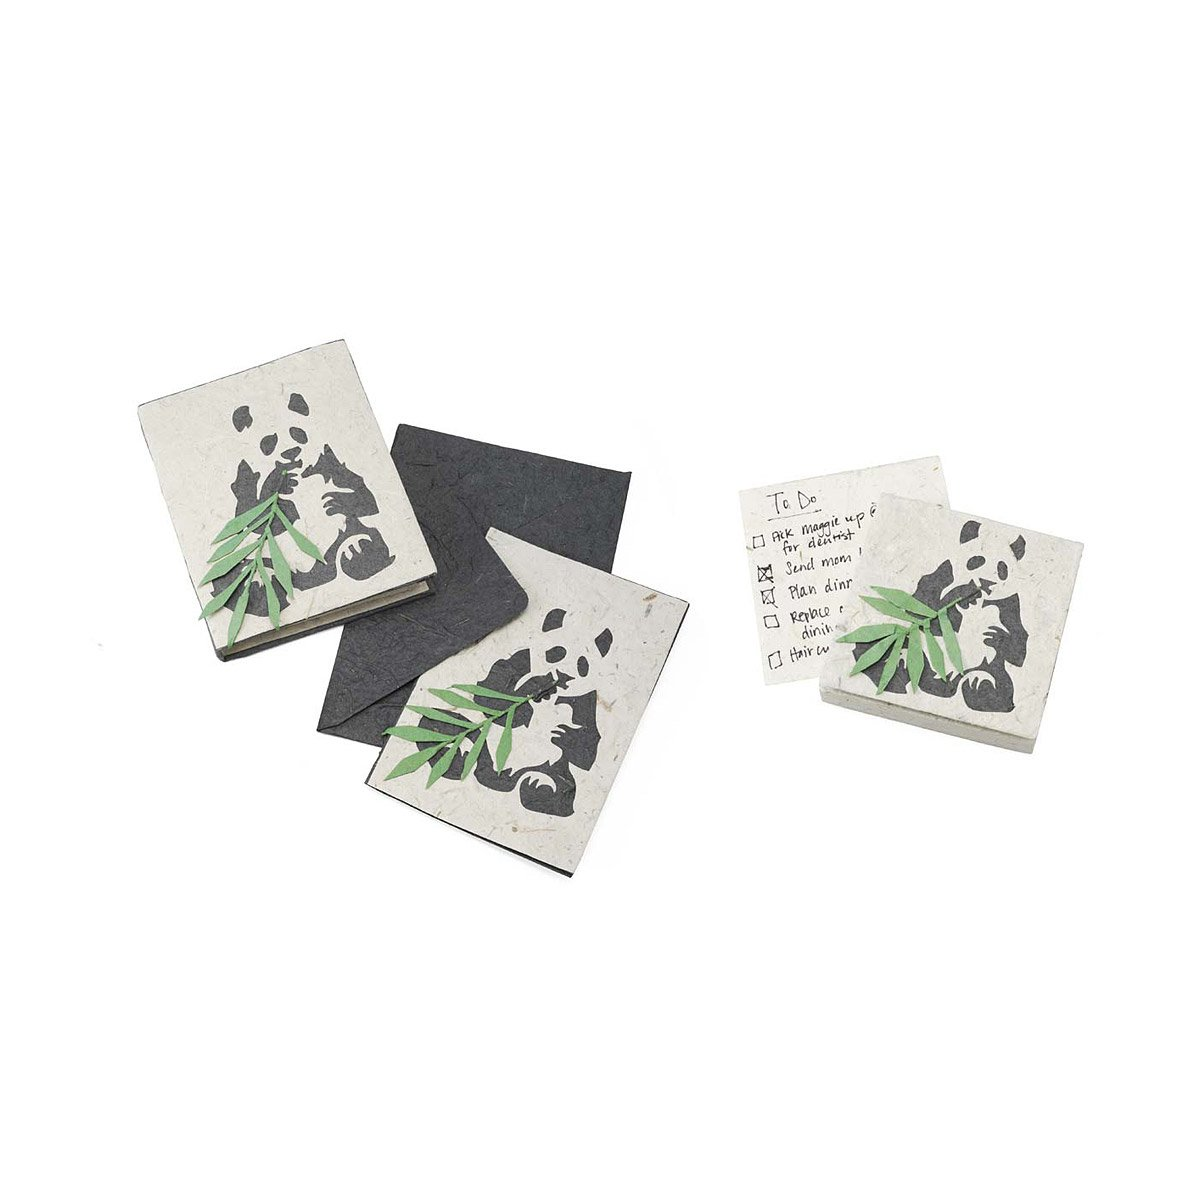 Panda Poo Paper Panda Poop Papers Notepad Journal Greeting